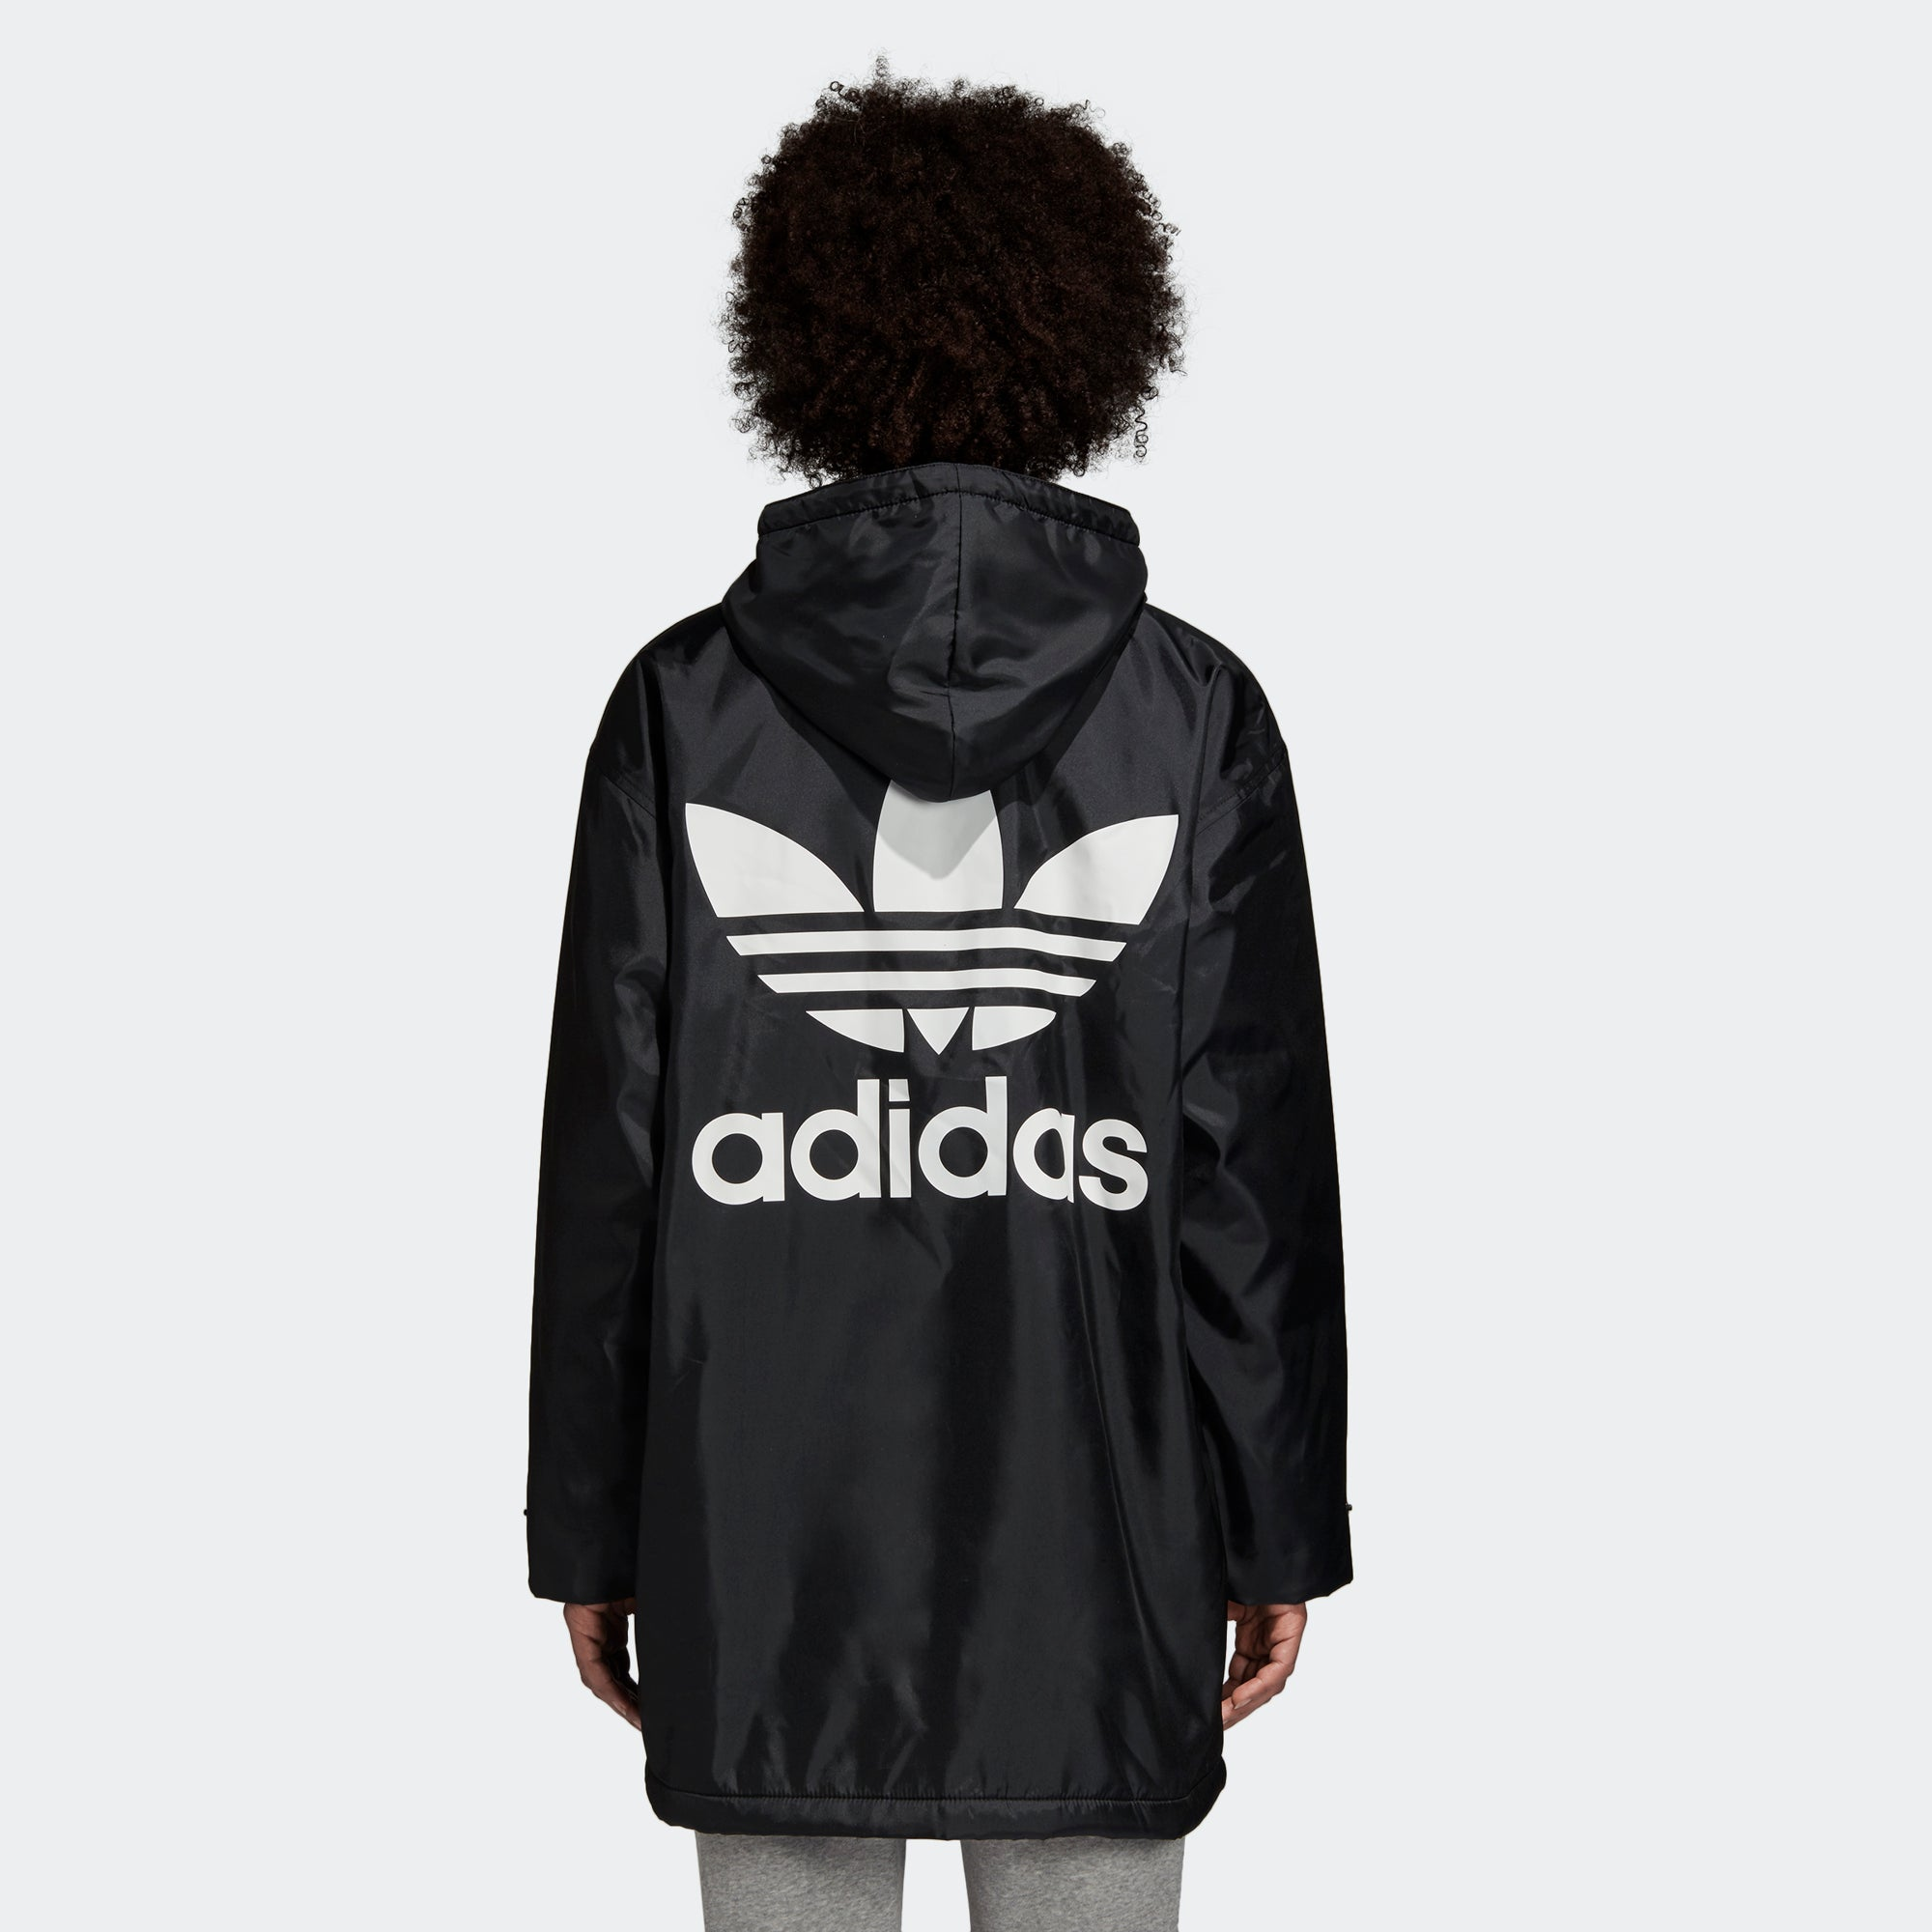 Adidas Jacket Black Dh4588 Chicago City Sports